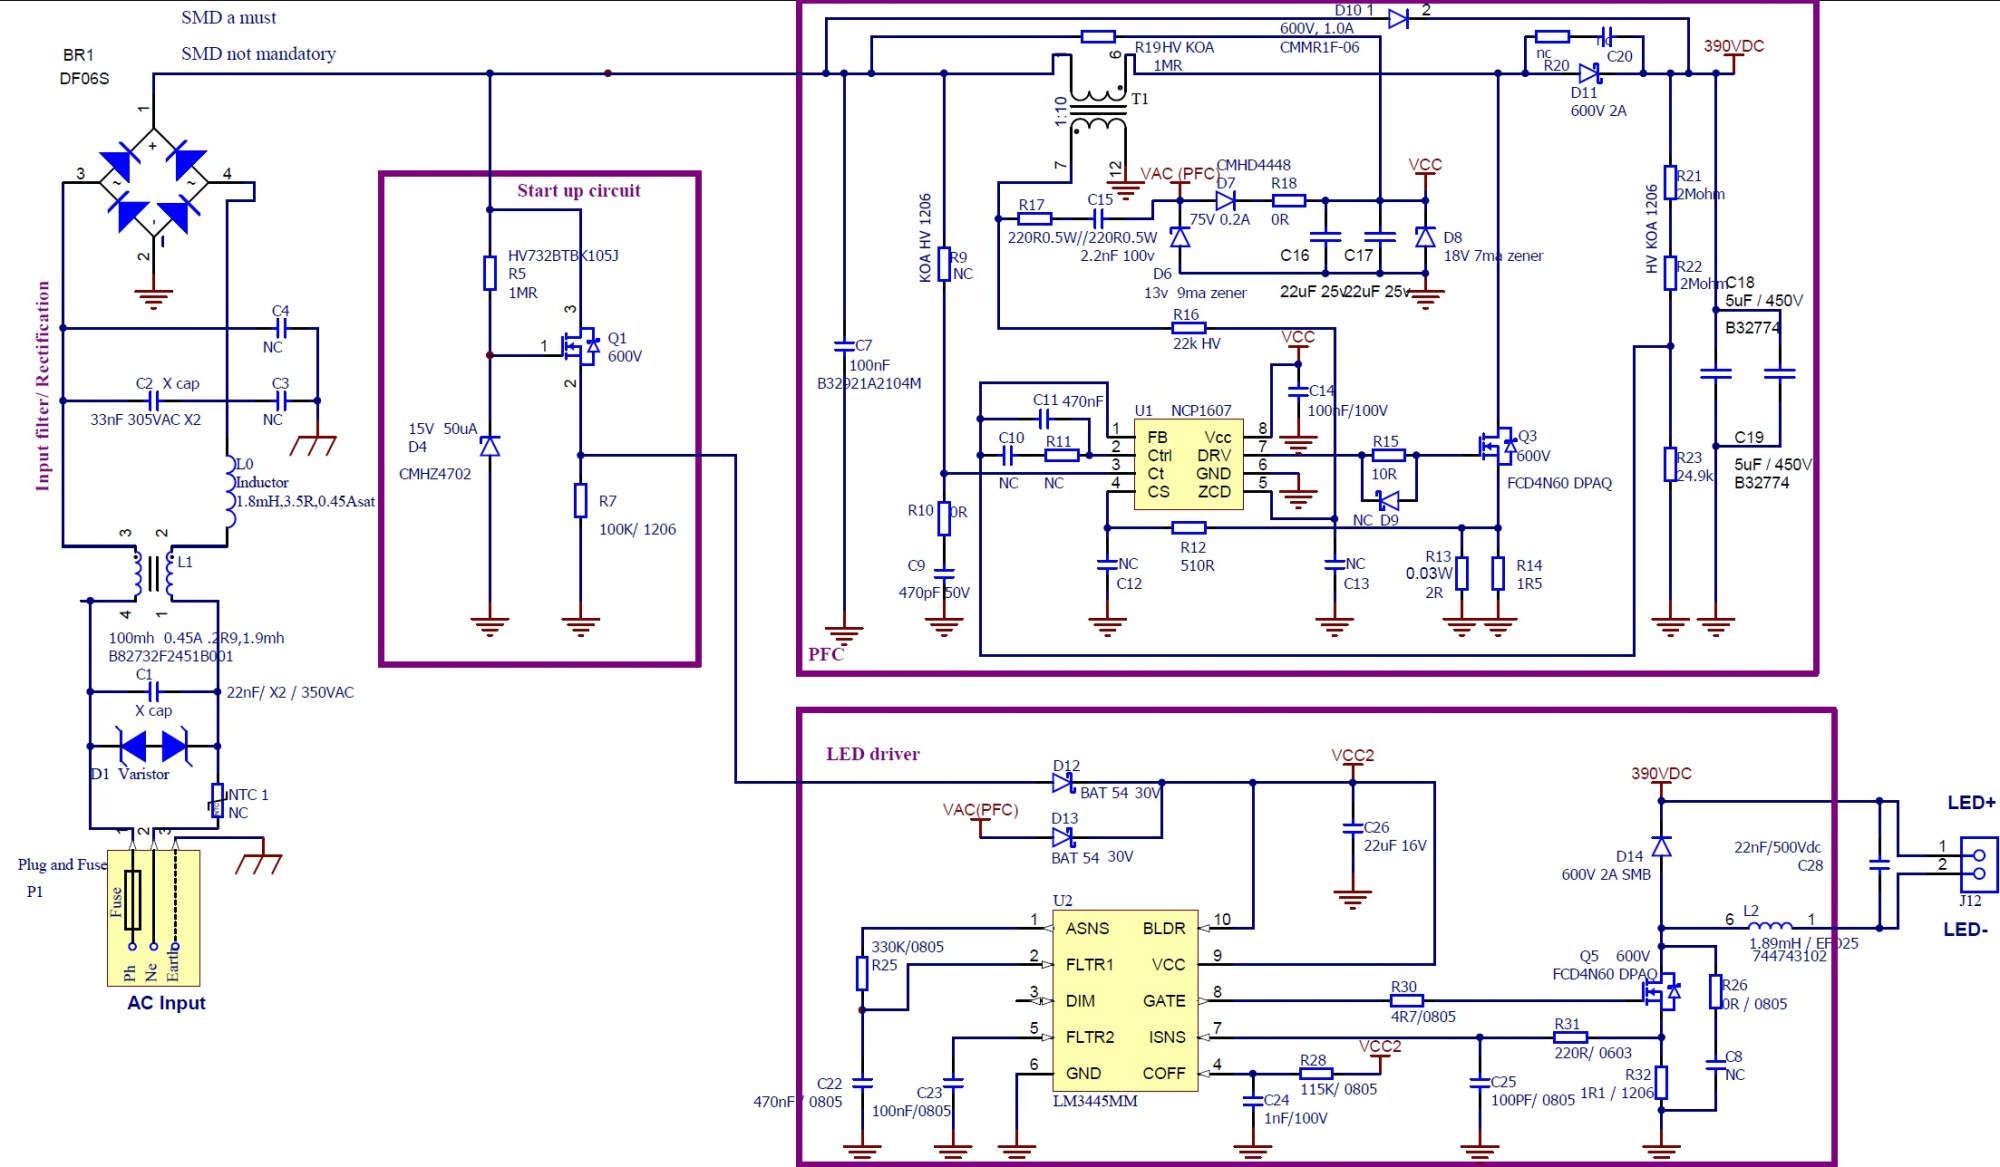 hight resolution of fulham workhorse wh5 120 l wiring diagram collection w22 workhorse wiring diagram fulham workhorse wh5